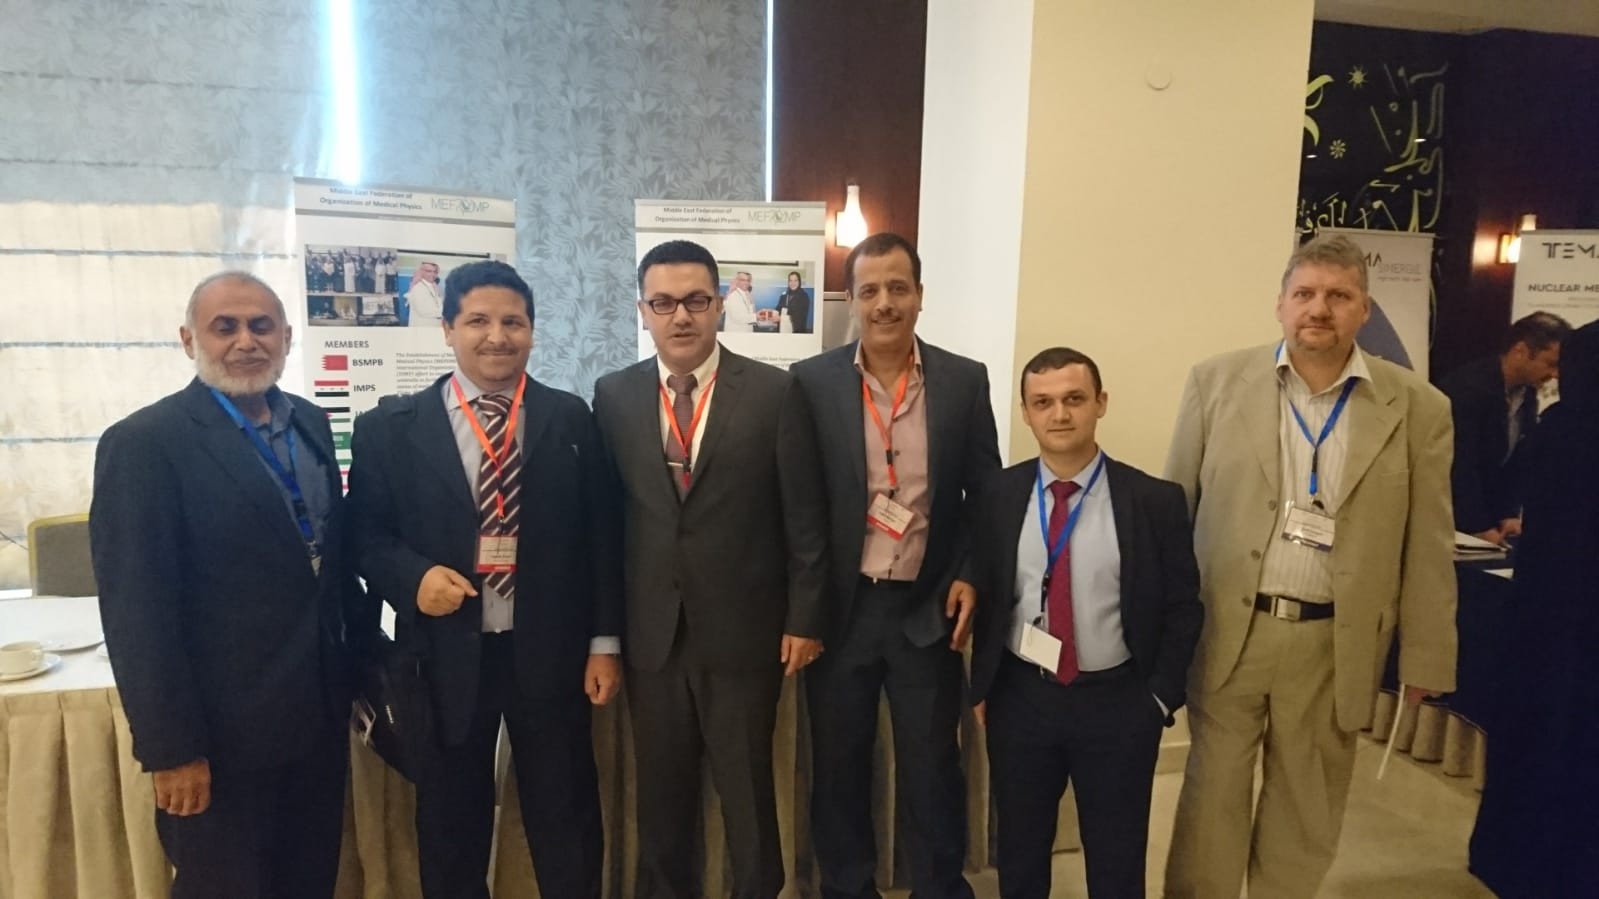 MEFOMP Team at 1st International Conference of ARSNM and JOSNM